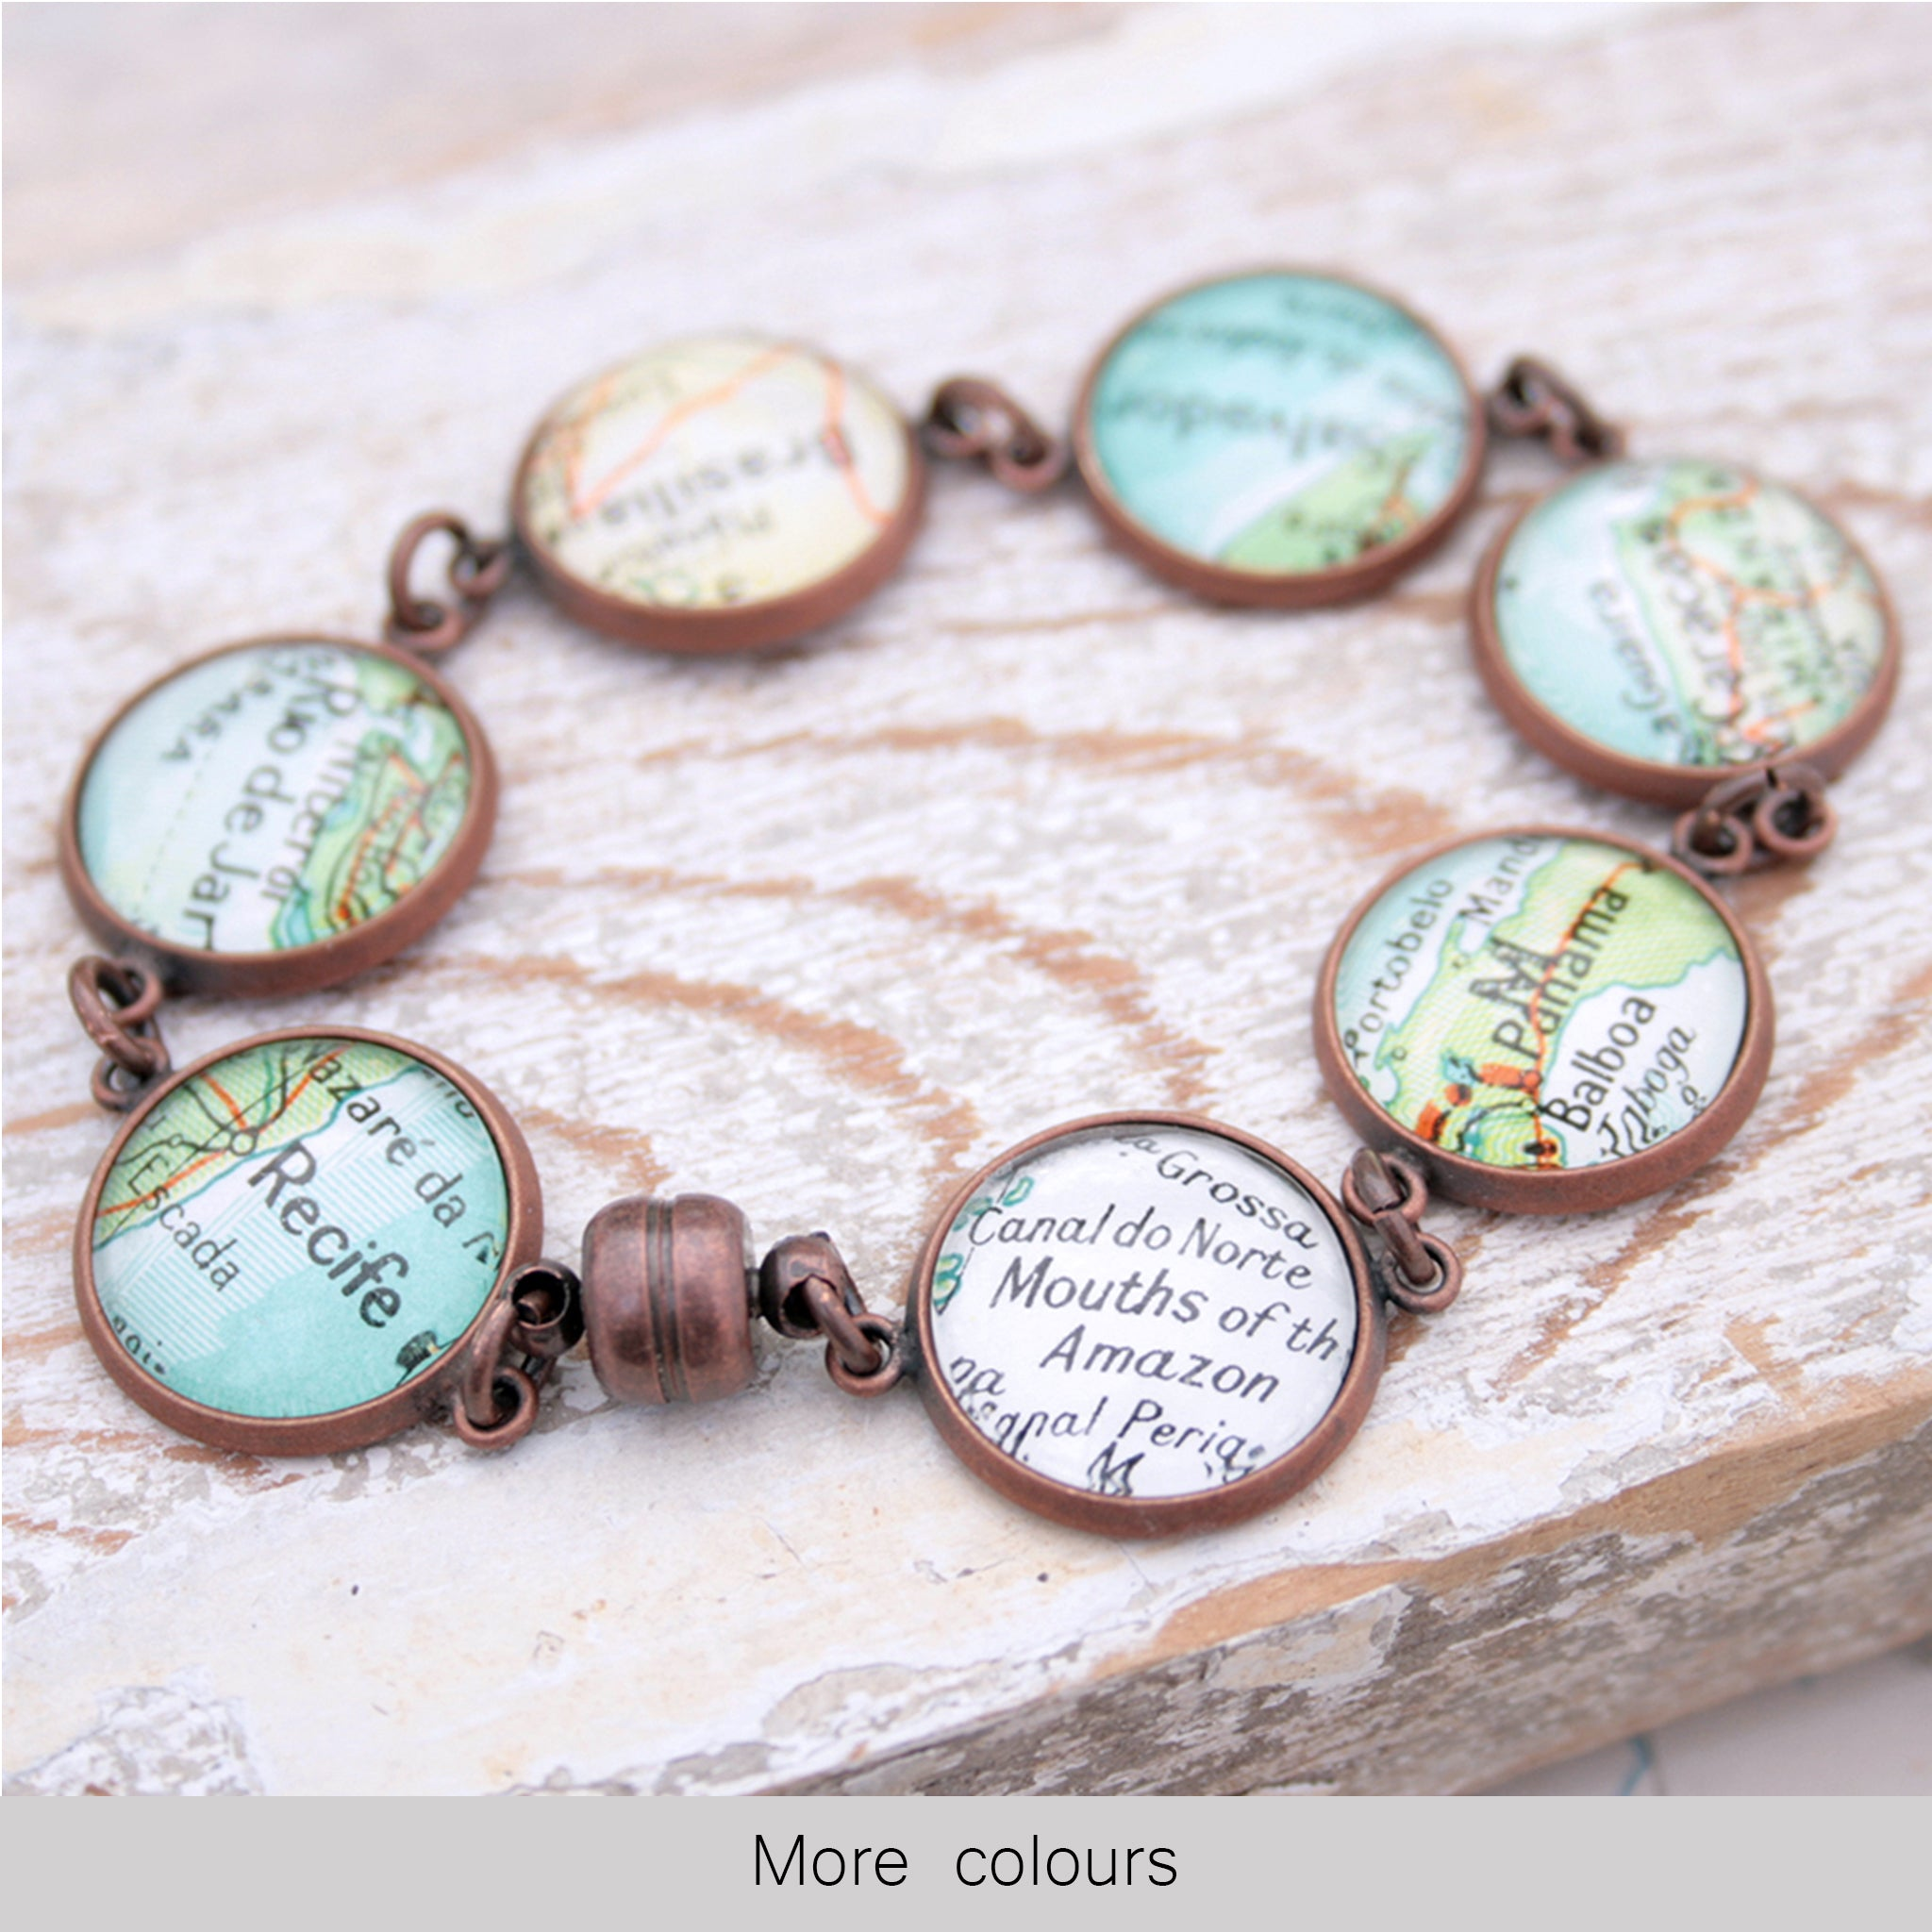 Antique copper beaded bracelet featuring different map locations